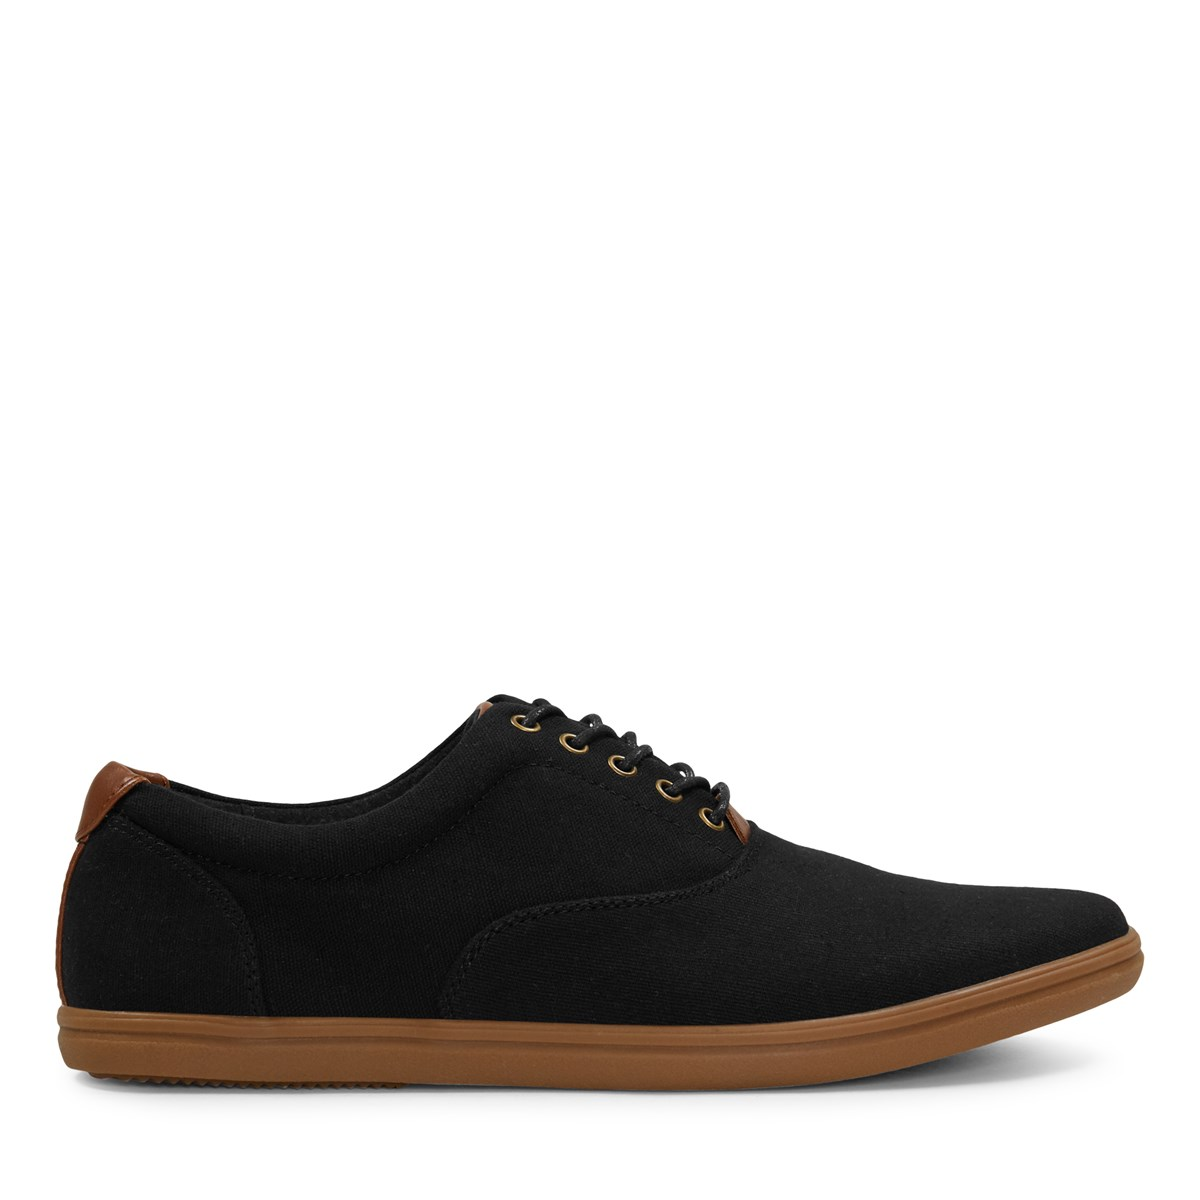 Men's Gustavo Canvas Lace-Up Shoes in Black